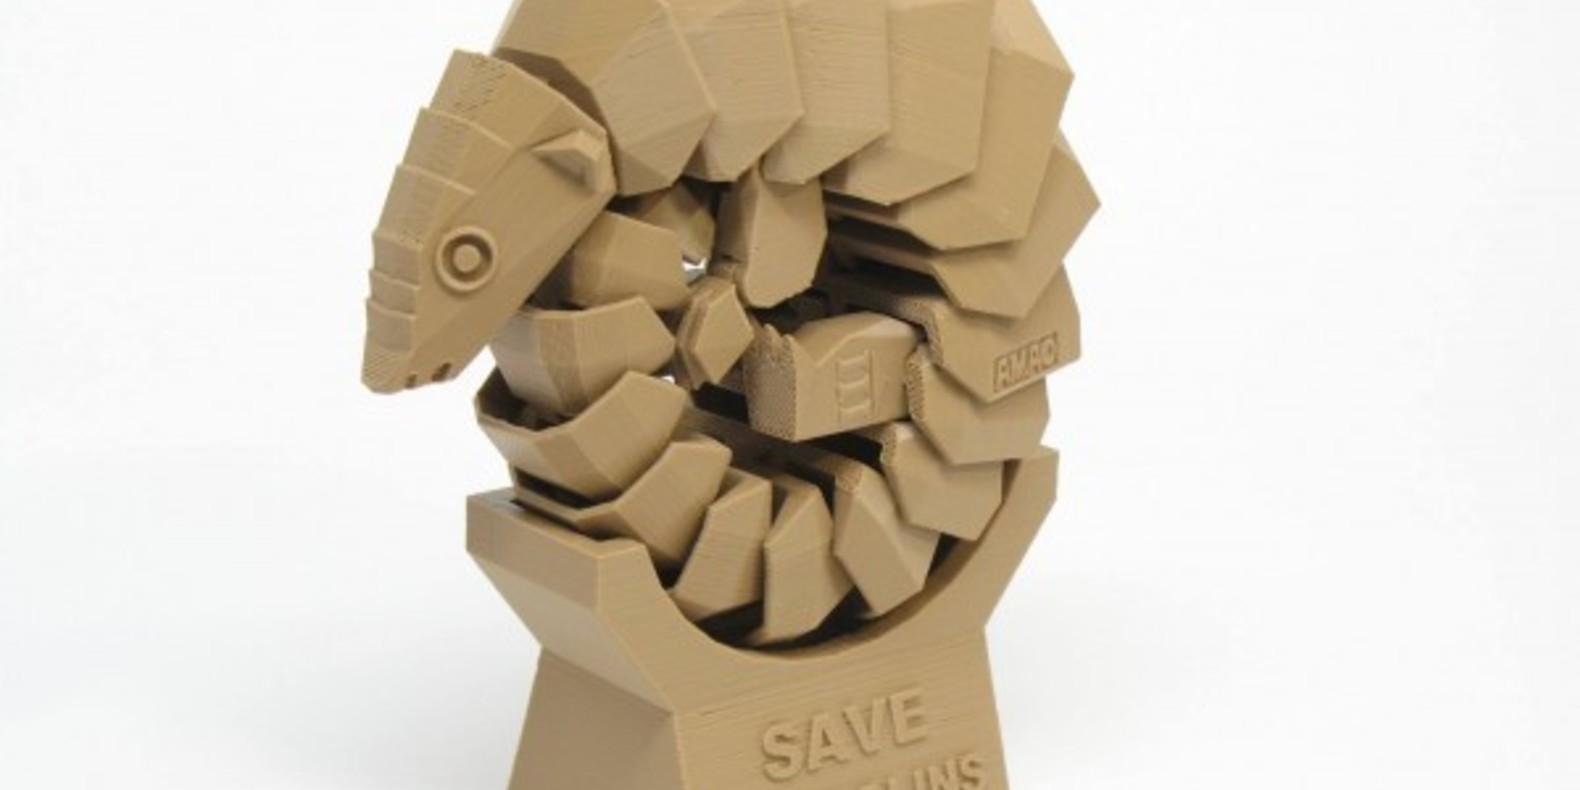 pangolin-3D-printing-cults-save-the-pangolins-1.jpg